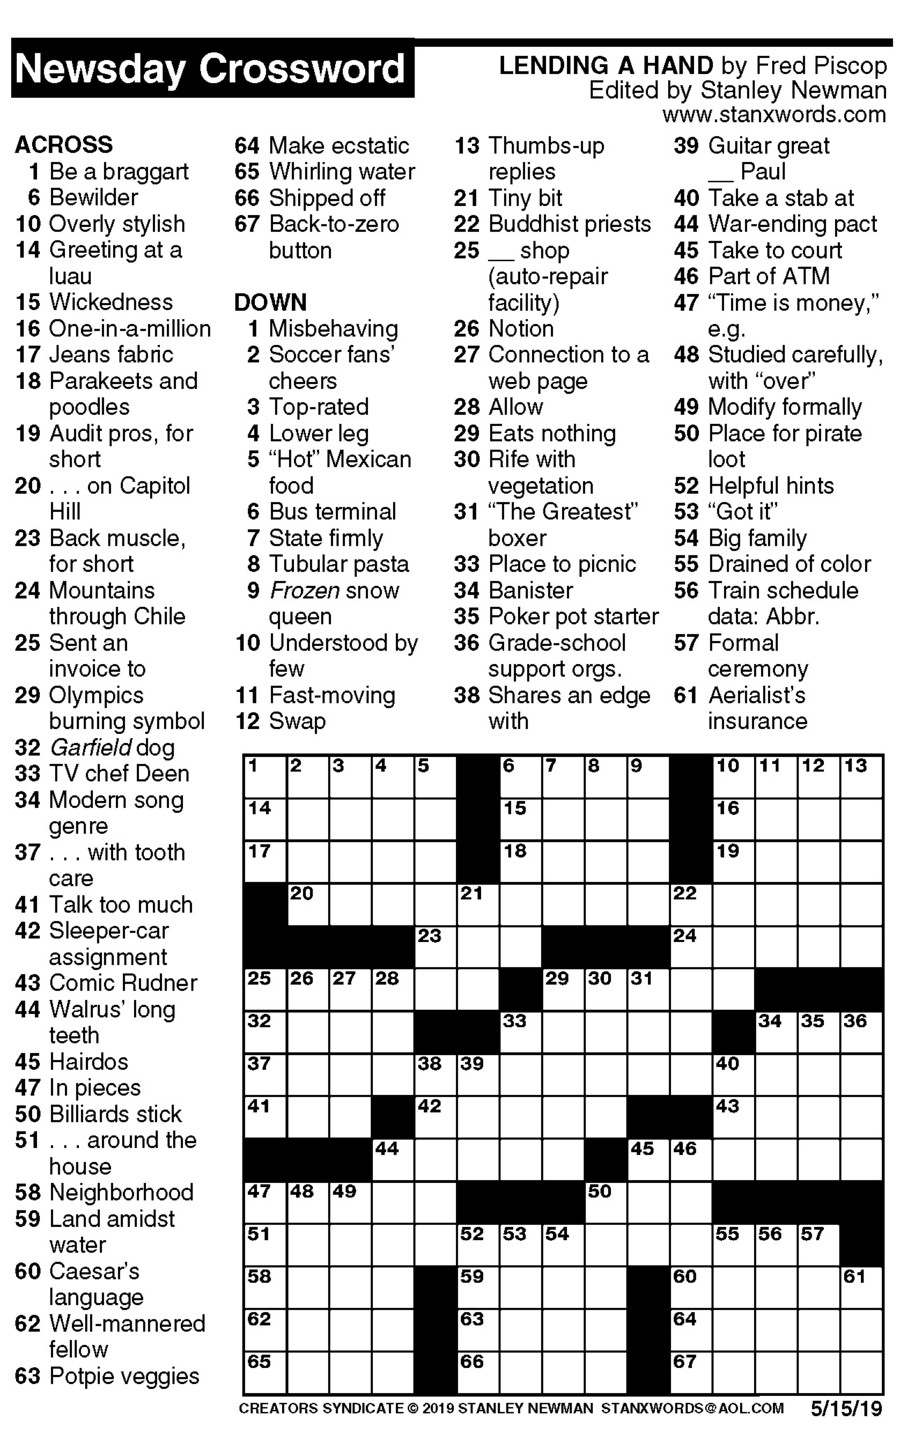 Newsday Crossword Puzzle for May 15, 2019